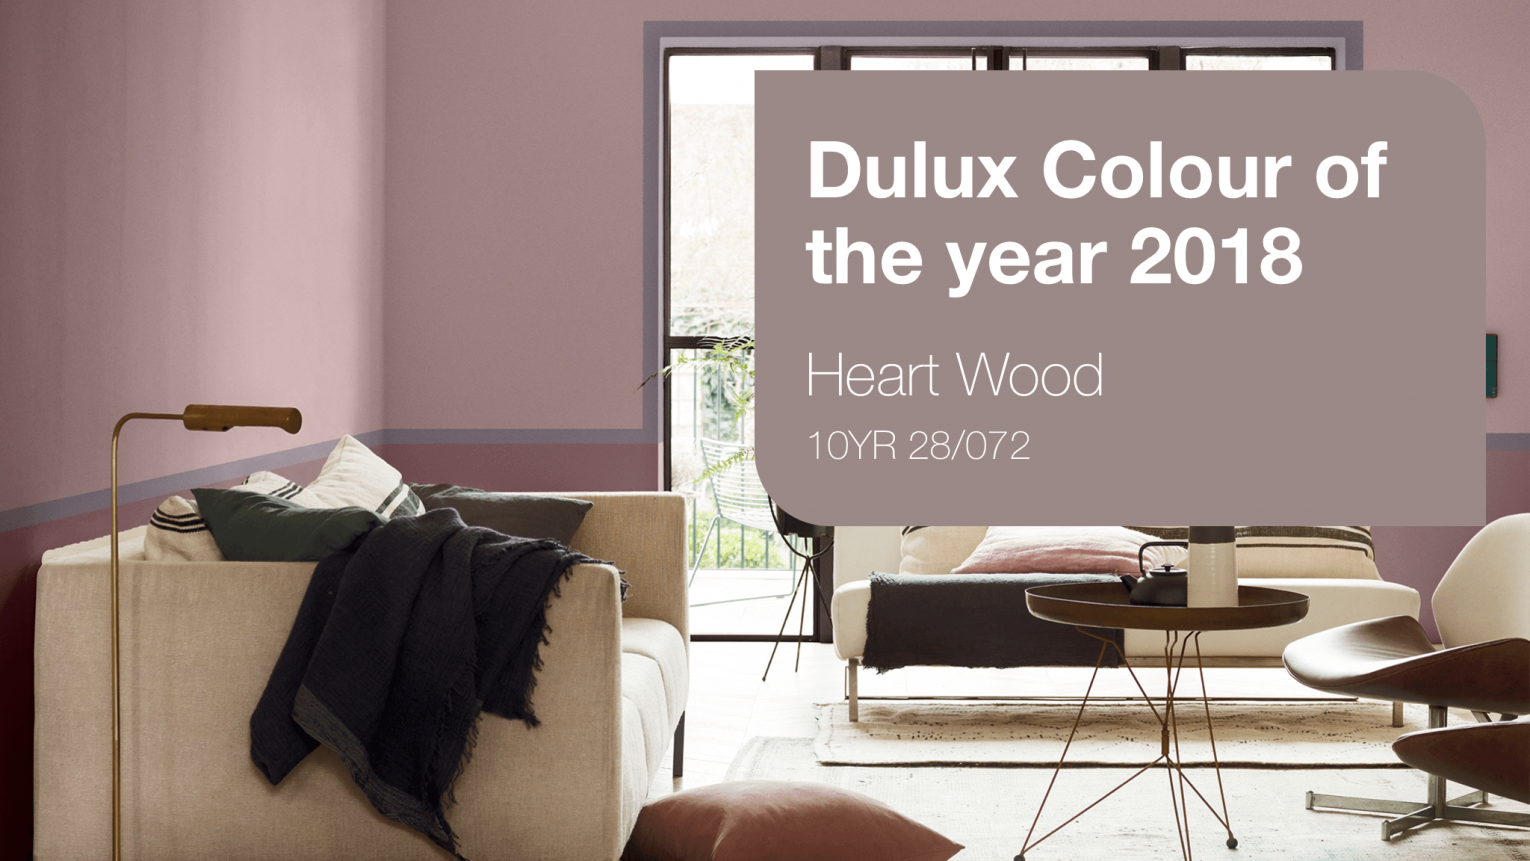 Dulux Colour-of-the-Year-2018- Key visual  Inspiration Hong Kong 1